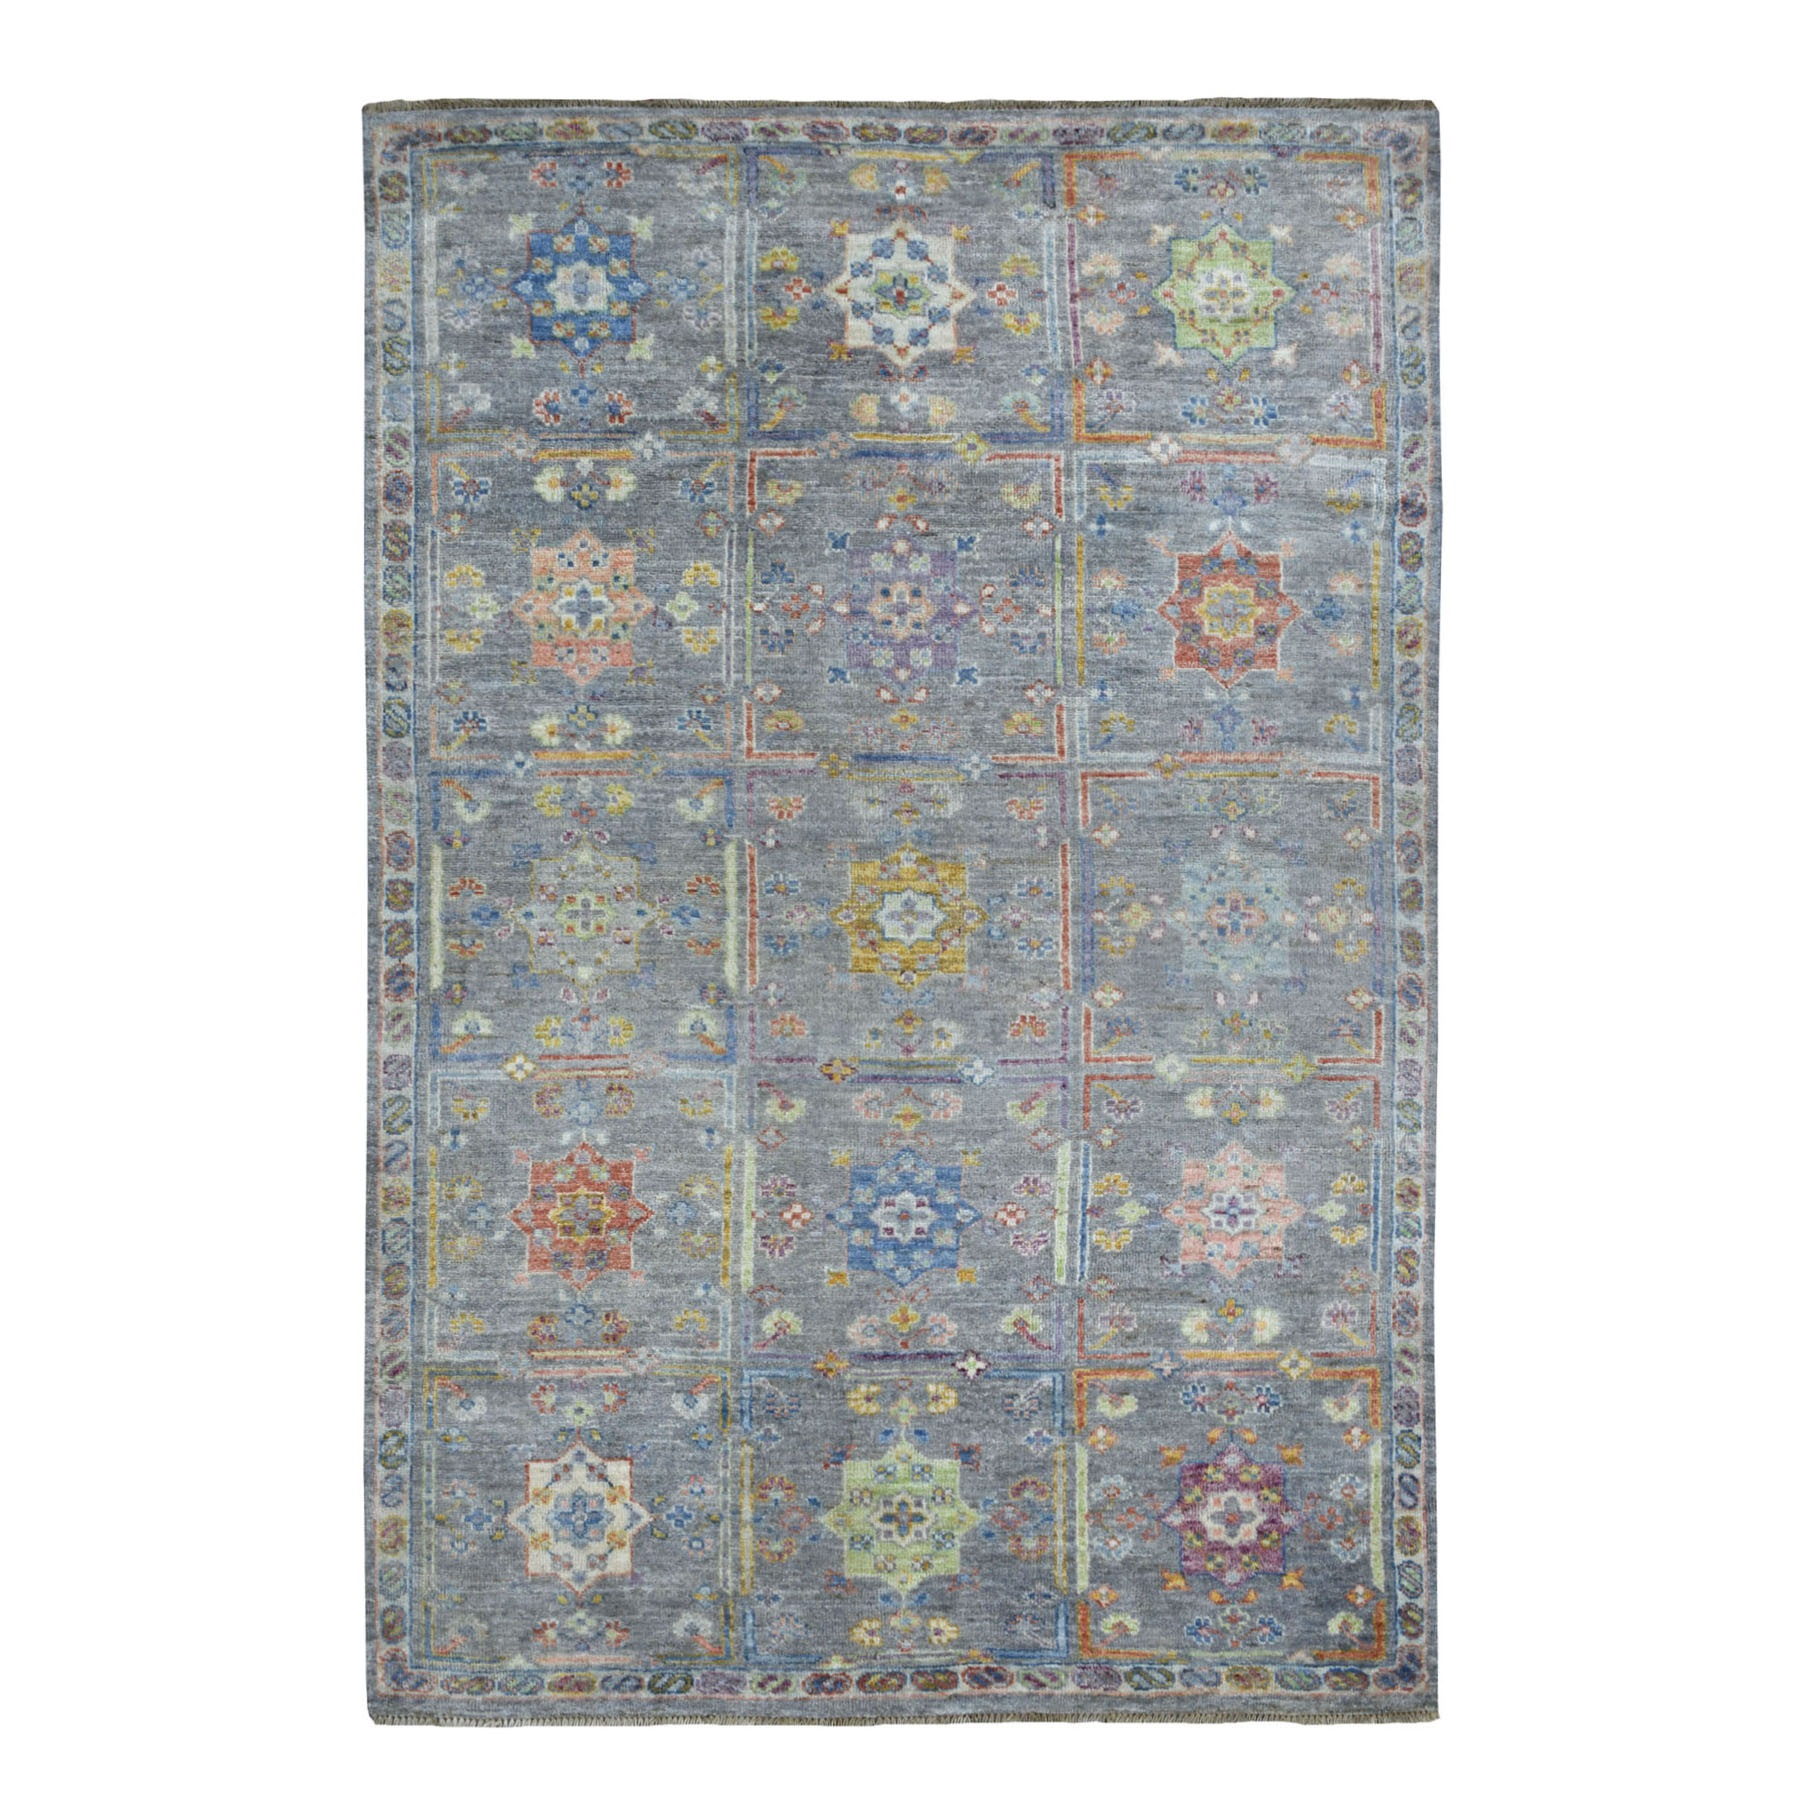 Nomadic And Village Collection Hand Knotted Grey Rug No: 01109164